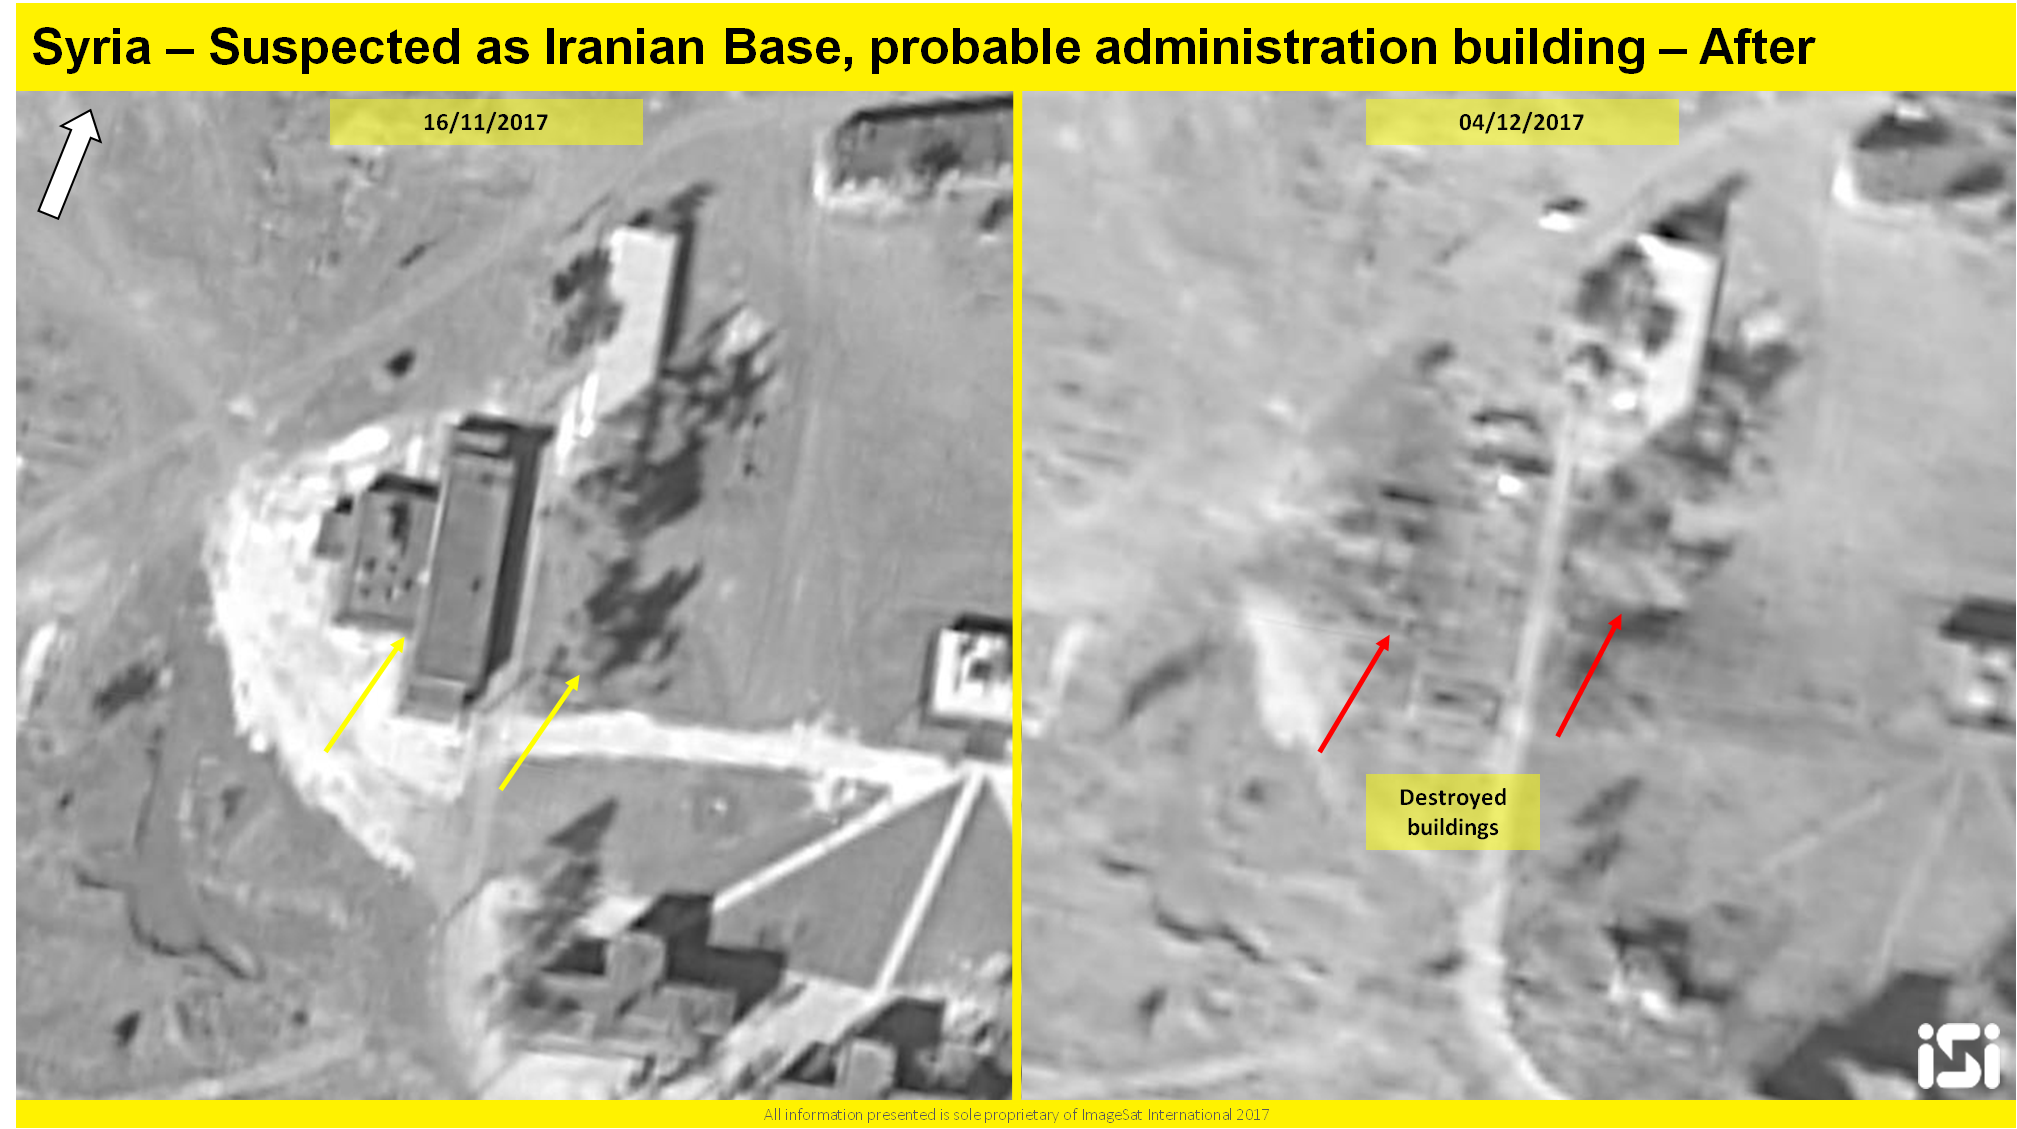 Israel Conducts Airstrikes Against Suspected Iranian Bases in Syria